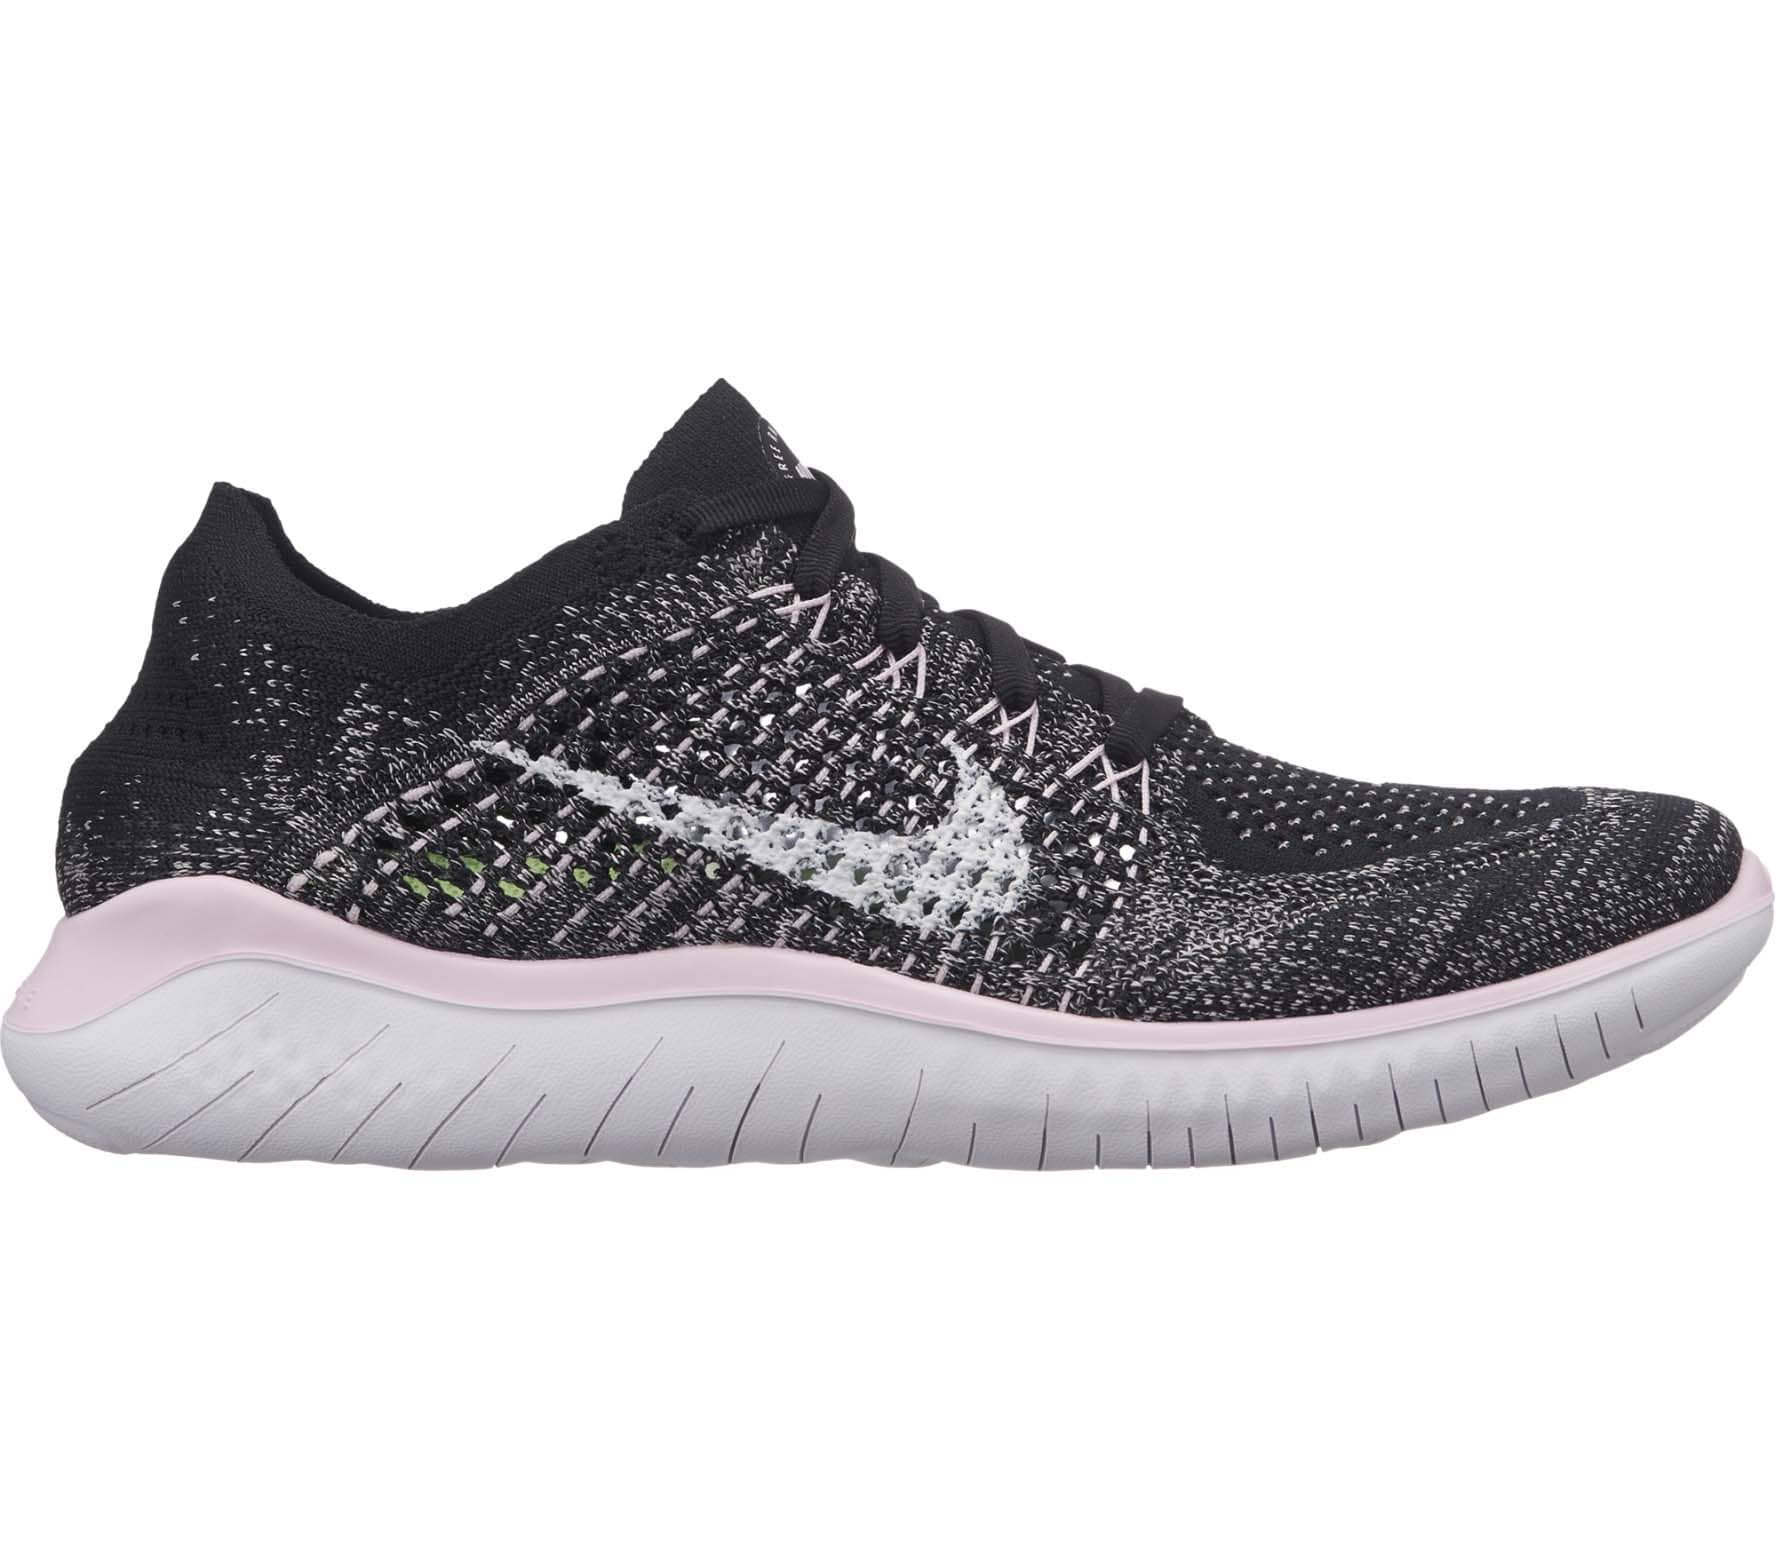 b1202674930630 Nike - Free RN Flyknit 2018 women s running shoes (black pink) - buy ...